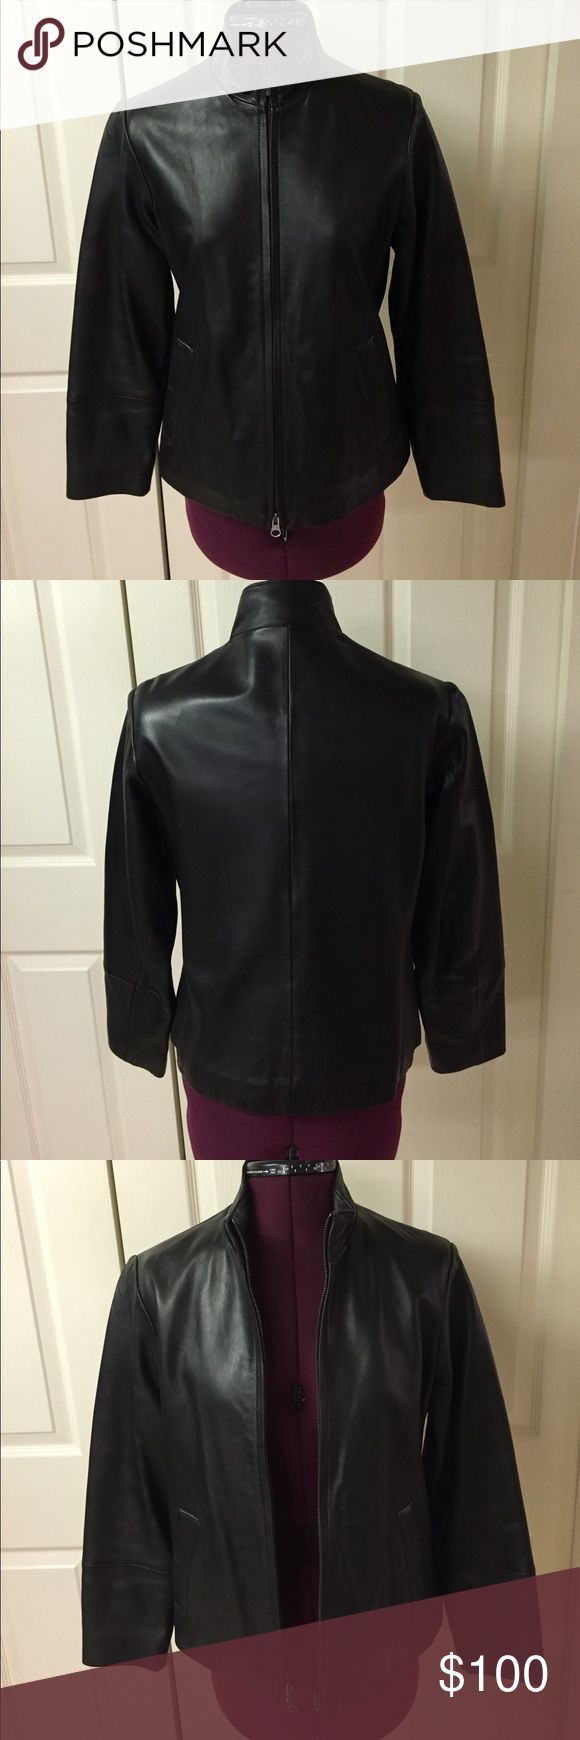 Genuine Lambskin Leather Zippered Jacket. Black. Eddie Bauer Genuine Lambskin Leather Jacket. Black. Size S Petite. Two Side Pockets. Pre-owned. Excellent Condition. Eddie Bauer Jackets & Coats